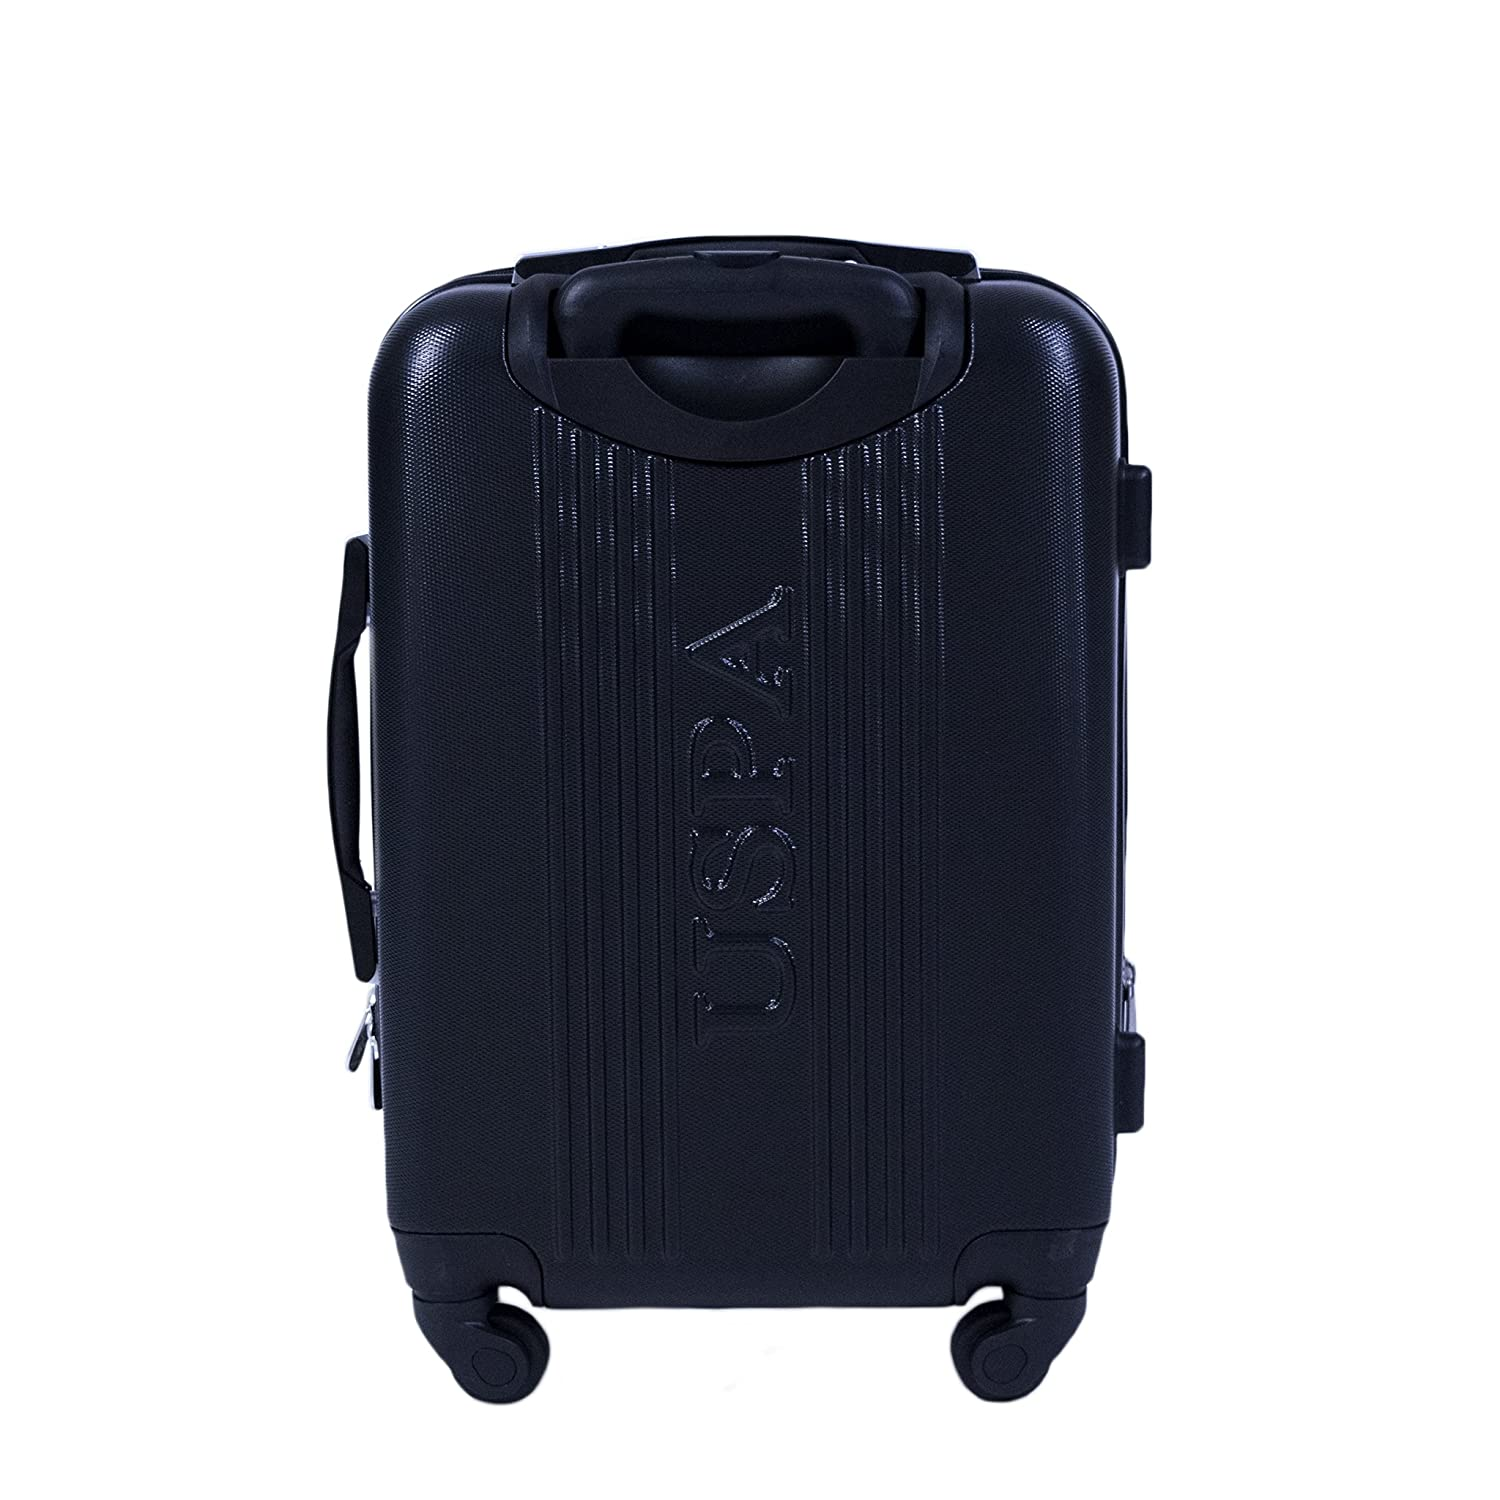 0d1d82af26 Amazon.com | U.S. Polo Assn. 21in Spinner Suitcase, Black | Carry-Ons